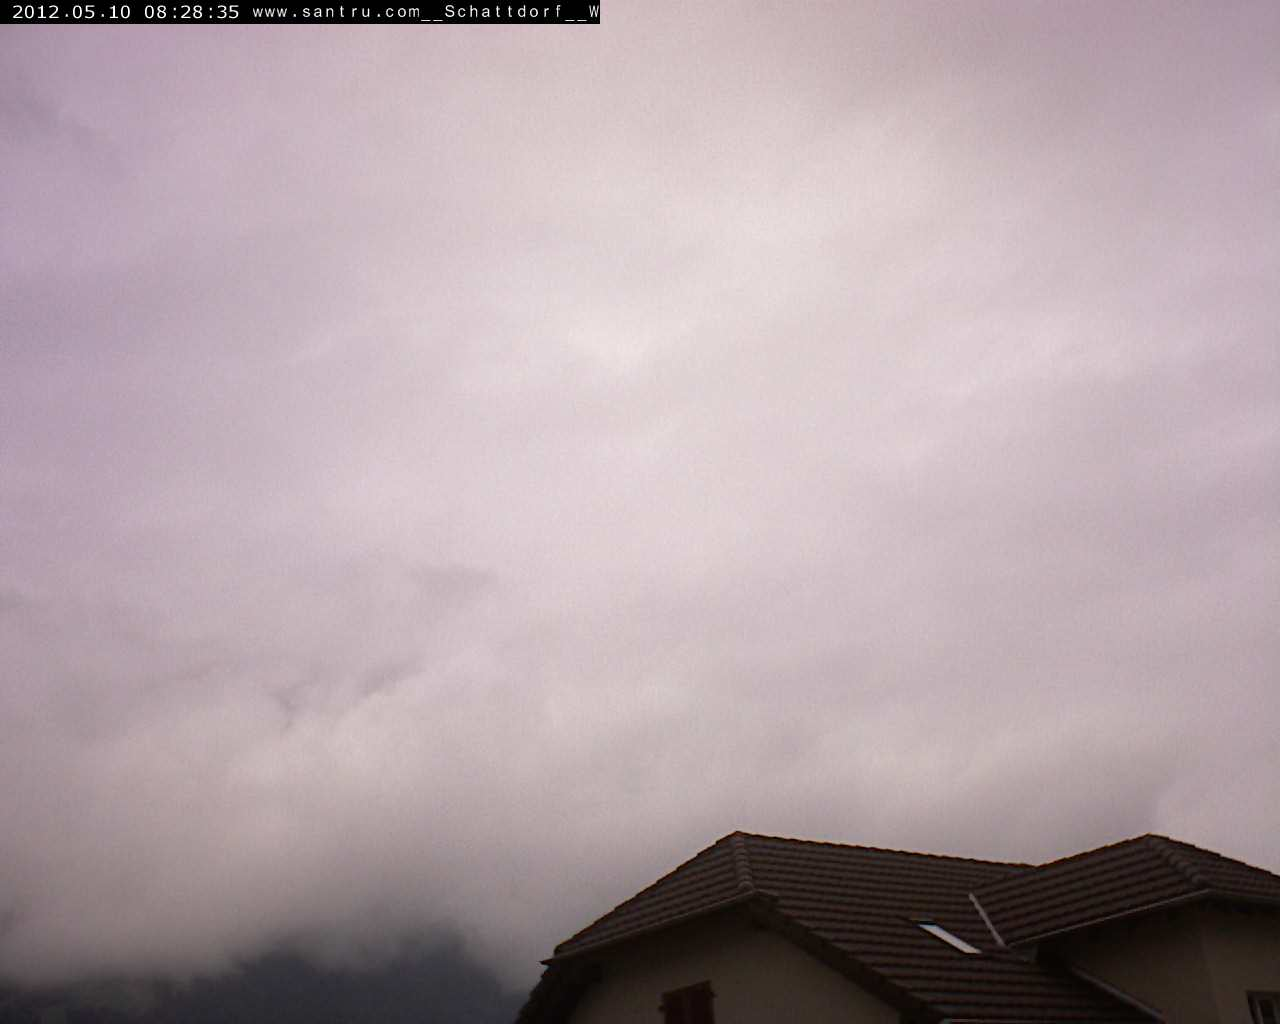 Webcams Altdorf